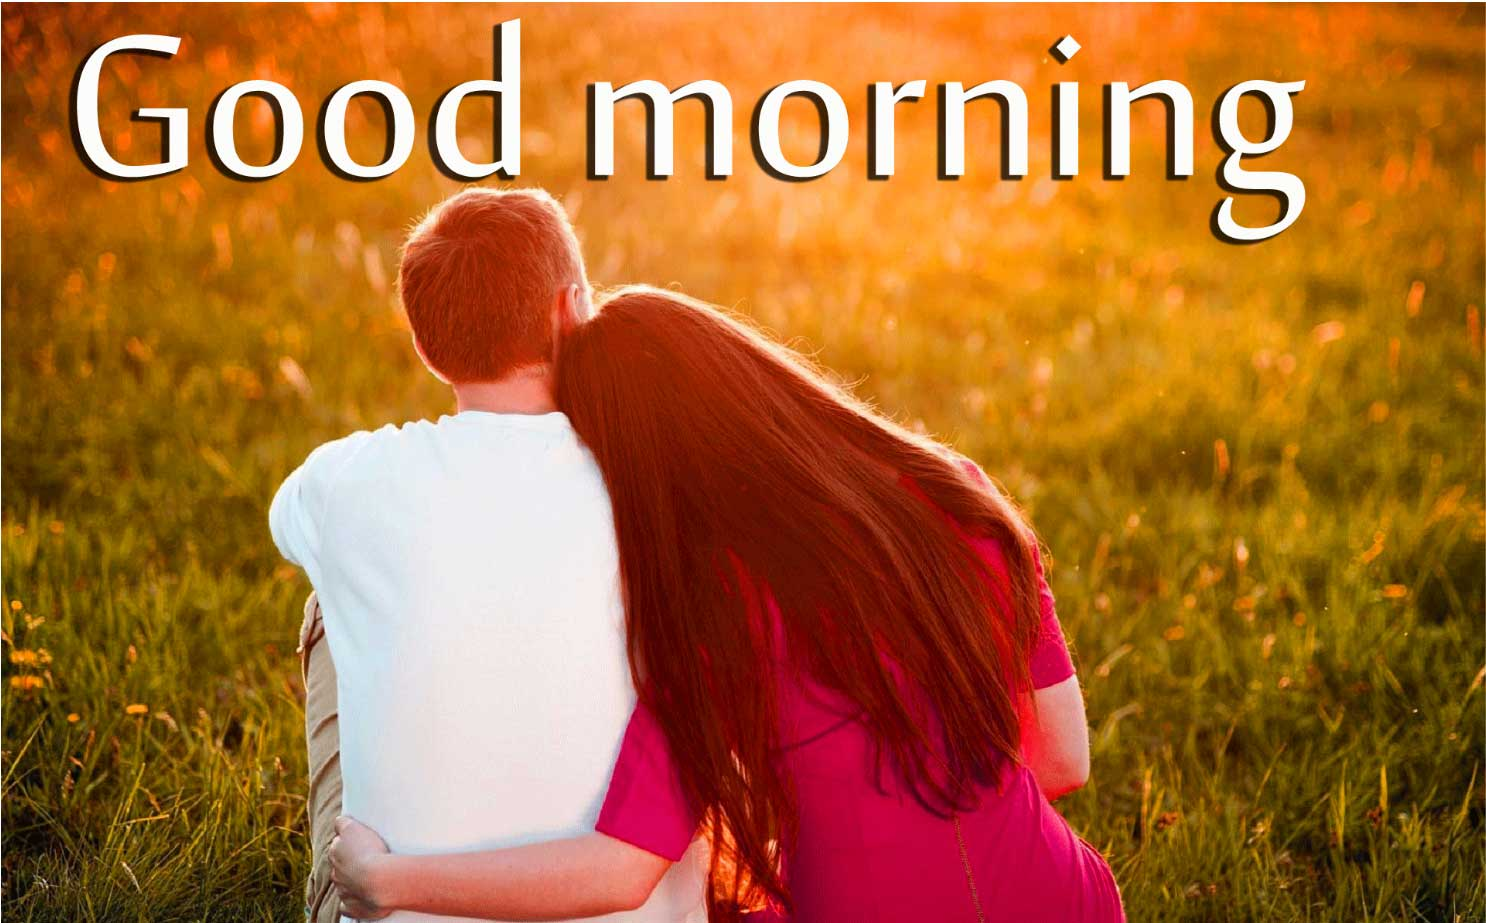 good morning love couple images hd download